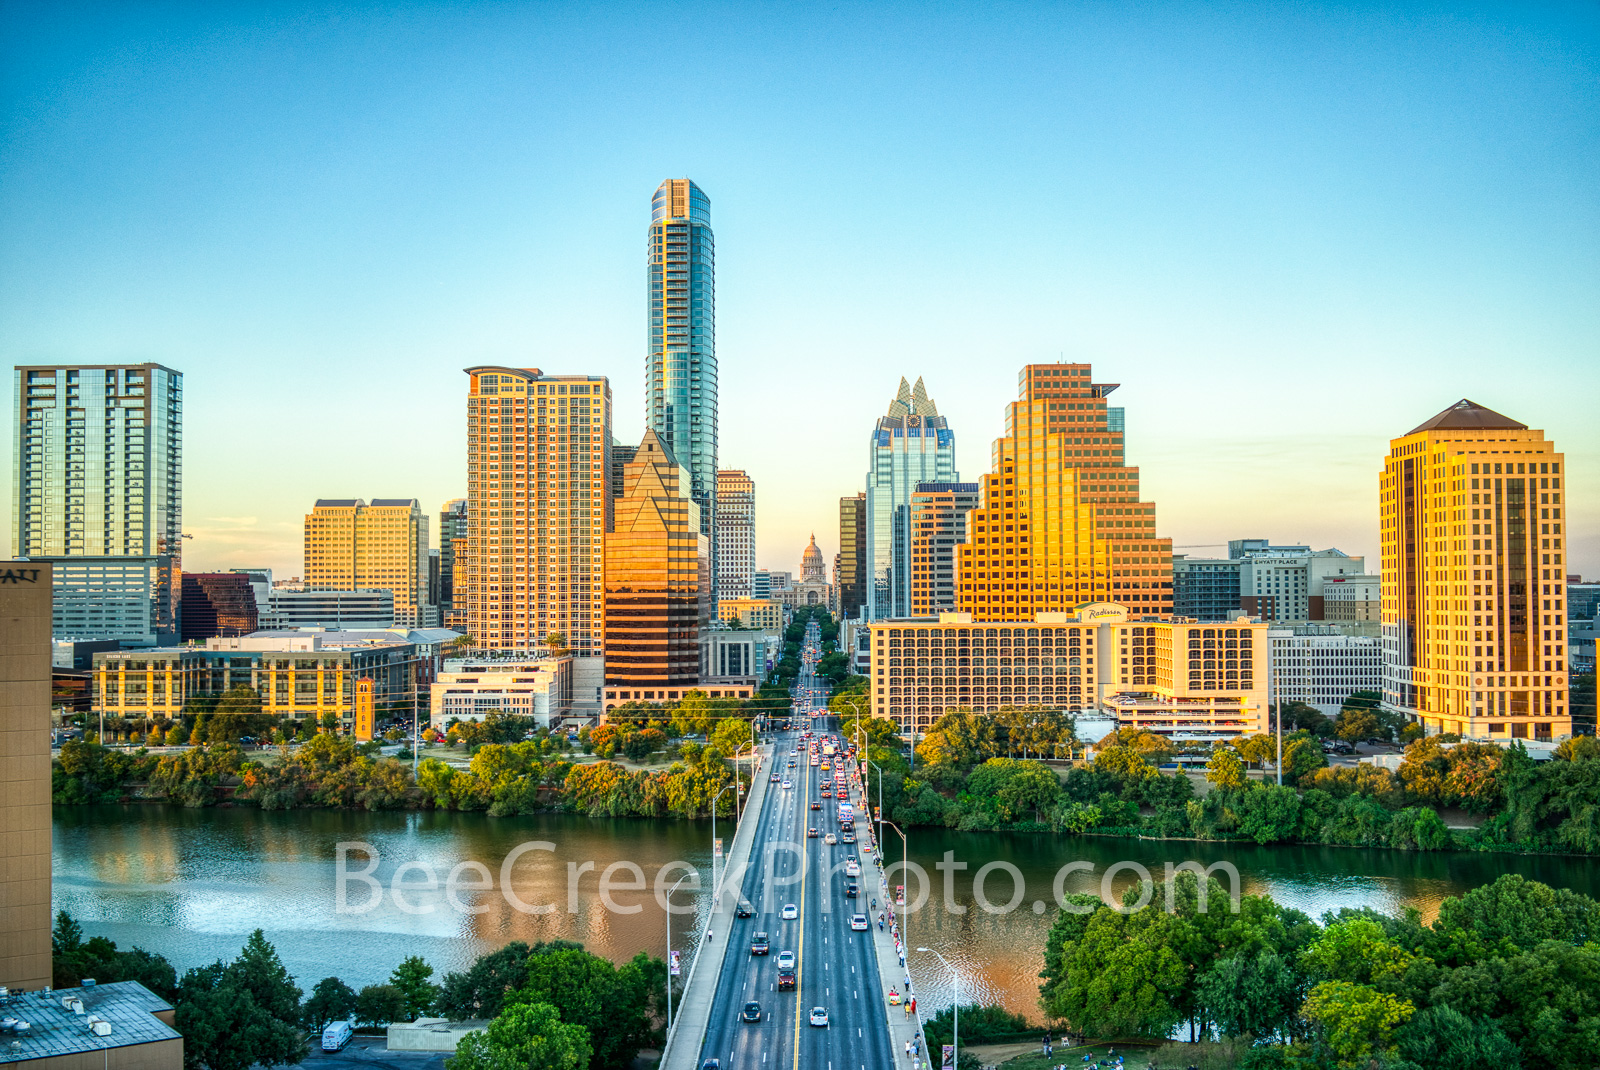 Austin skyline, aerial, capitol, capital, downtown, skyline, city, cityscape, Congress Ave, high-rise, buildings, Frost, Austonian, One Congress Plaza, Radisson, One Congress Plaza, Ashton Condos, One, photo